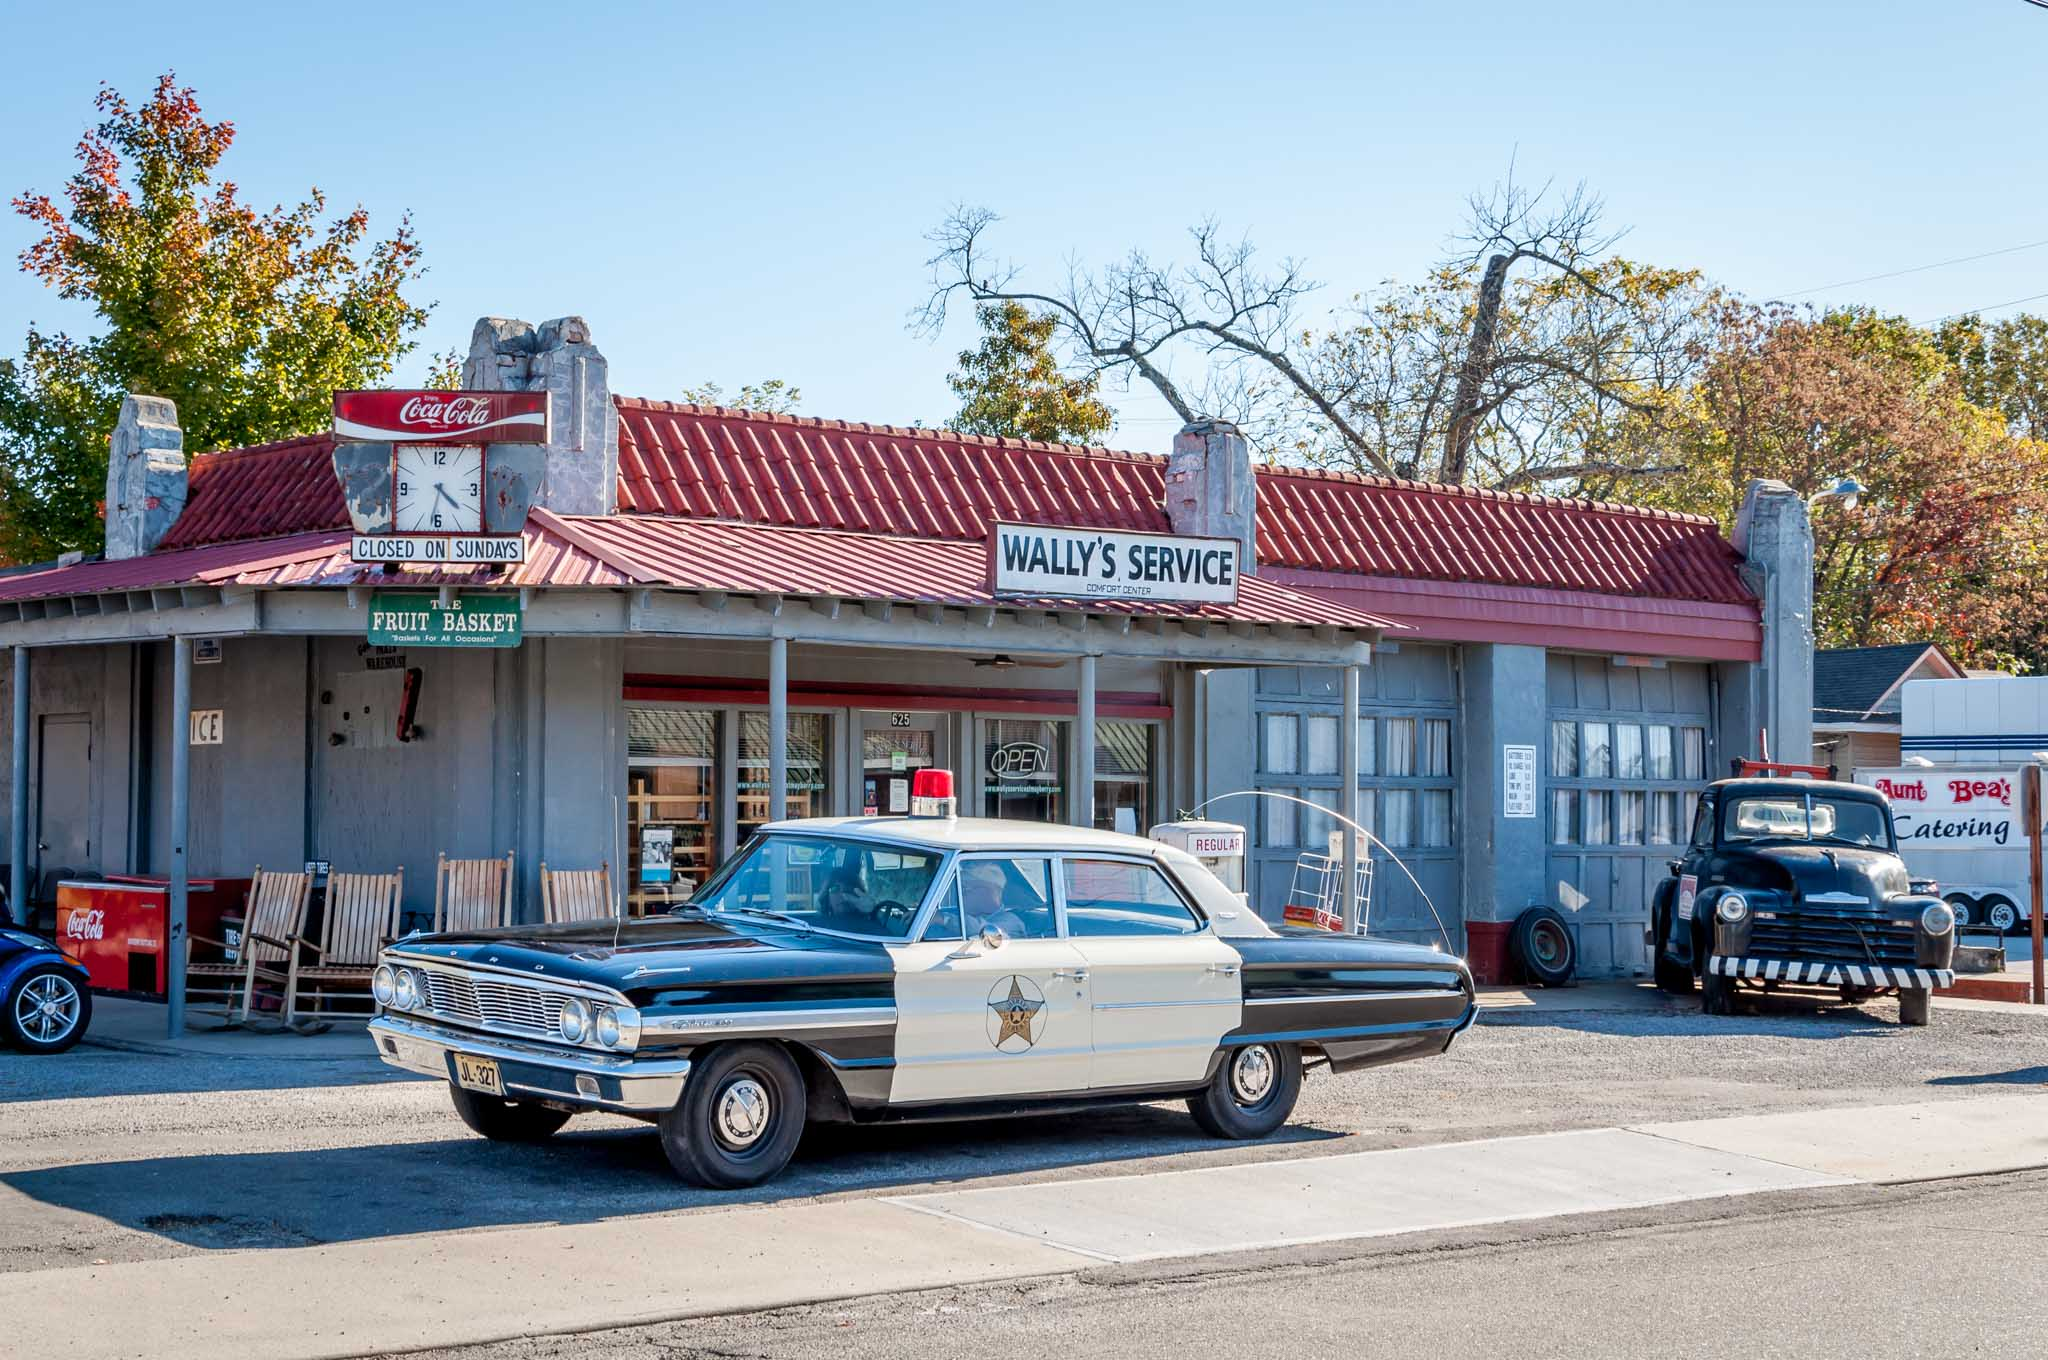 A squad car tour shows visitors the sights of Mayberry. It's one of the unique things to do in Mount Airy NC